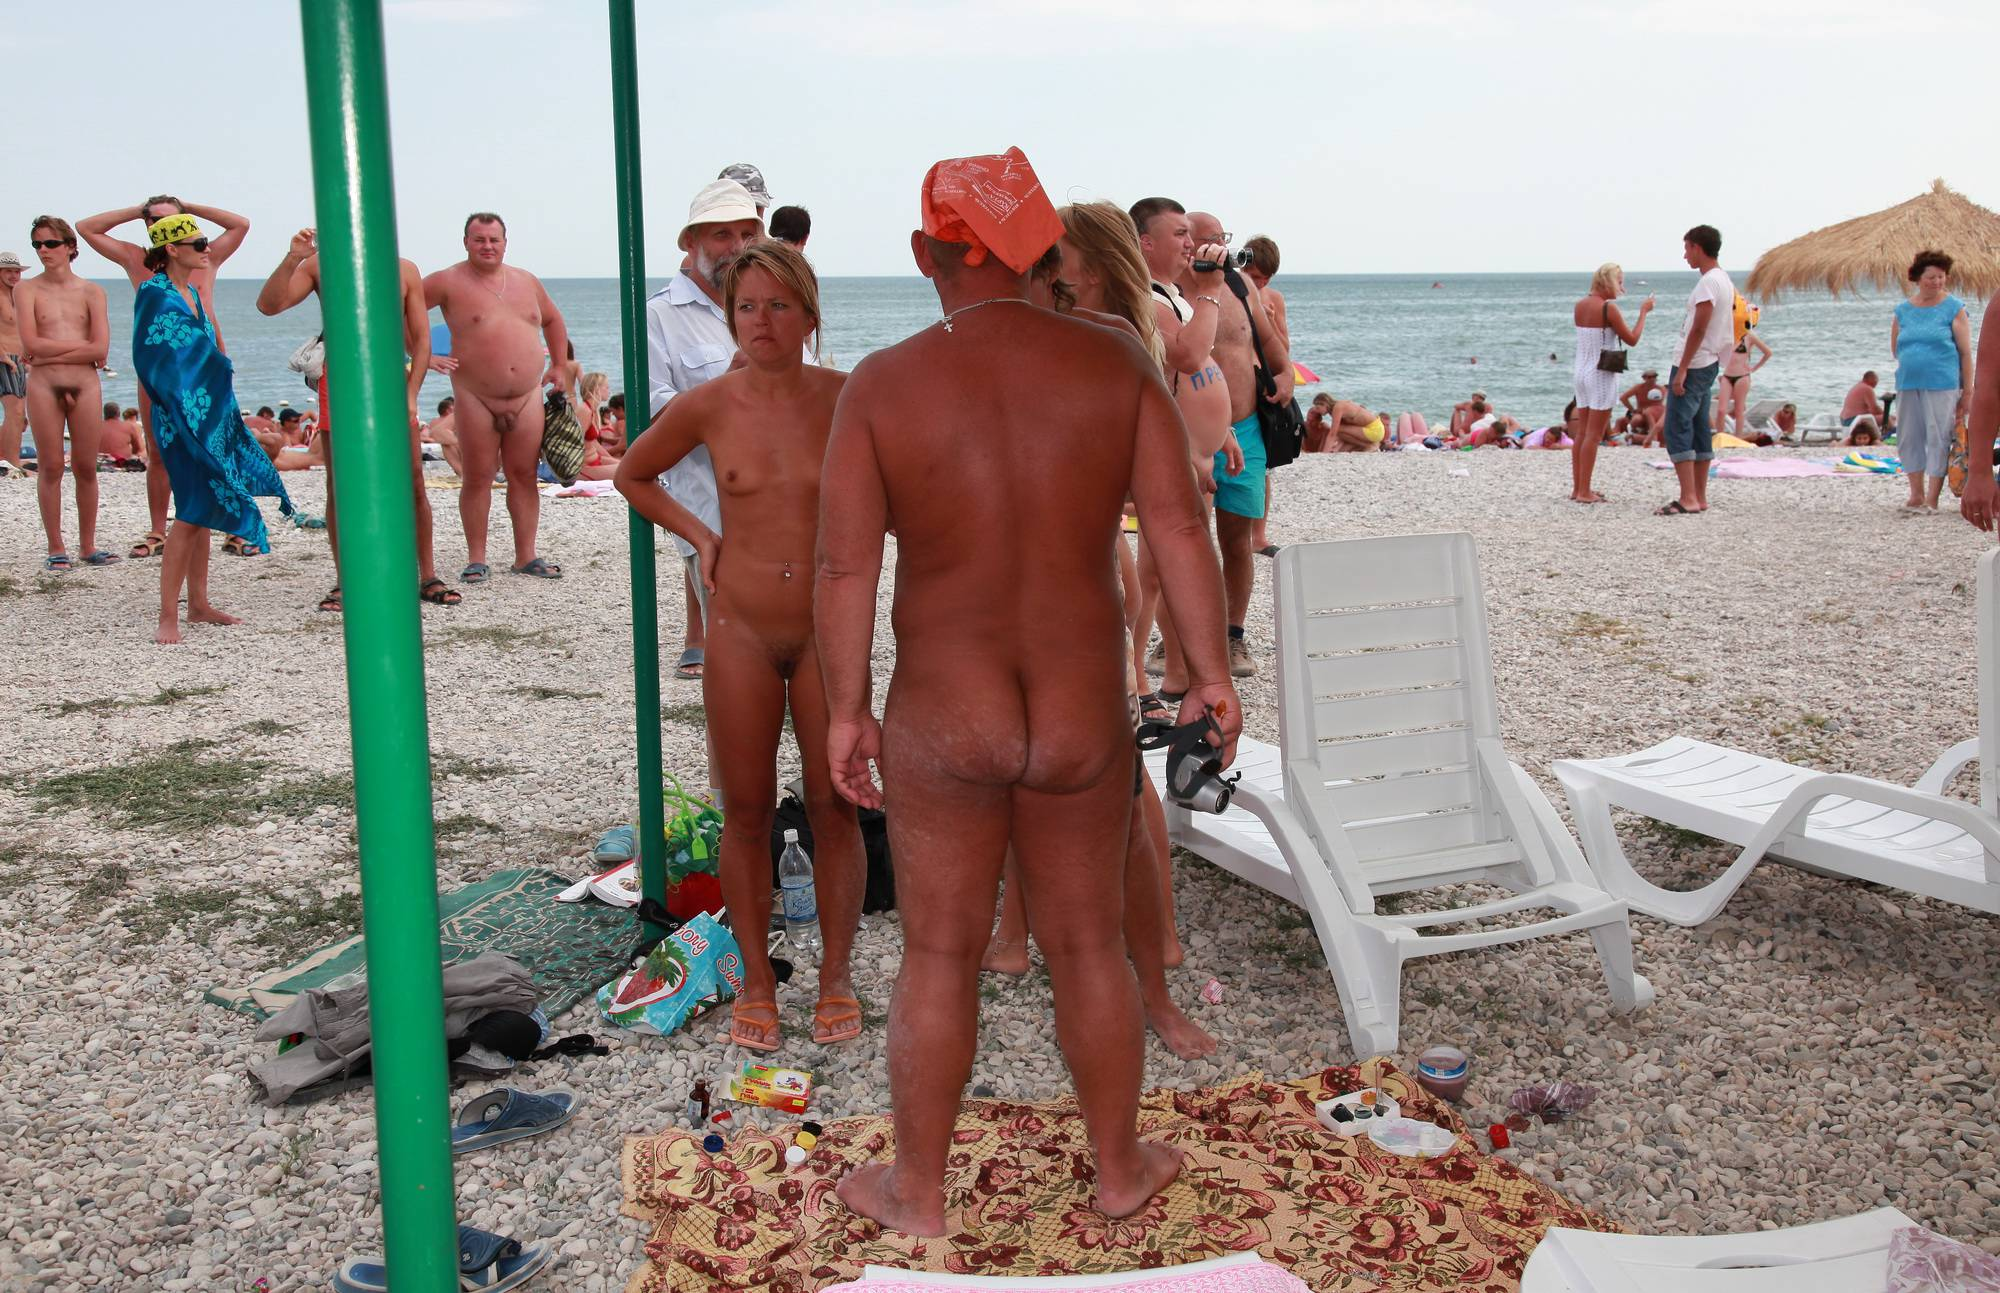 Nudist Pics Painting and Assortments - 2